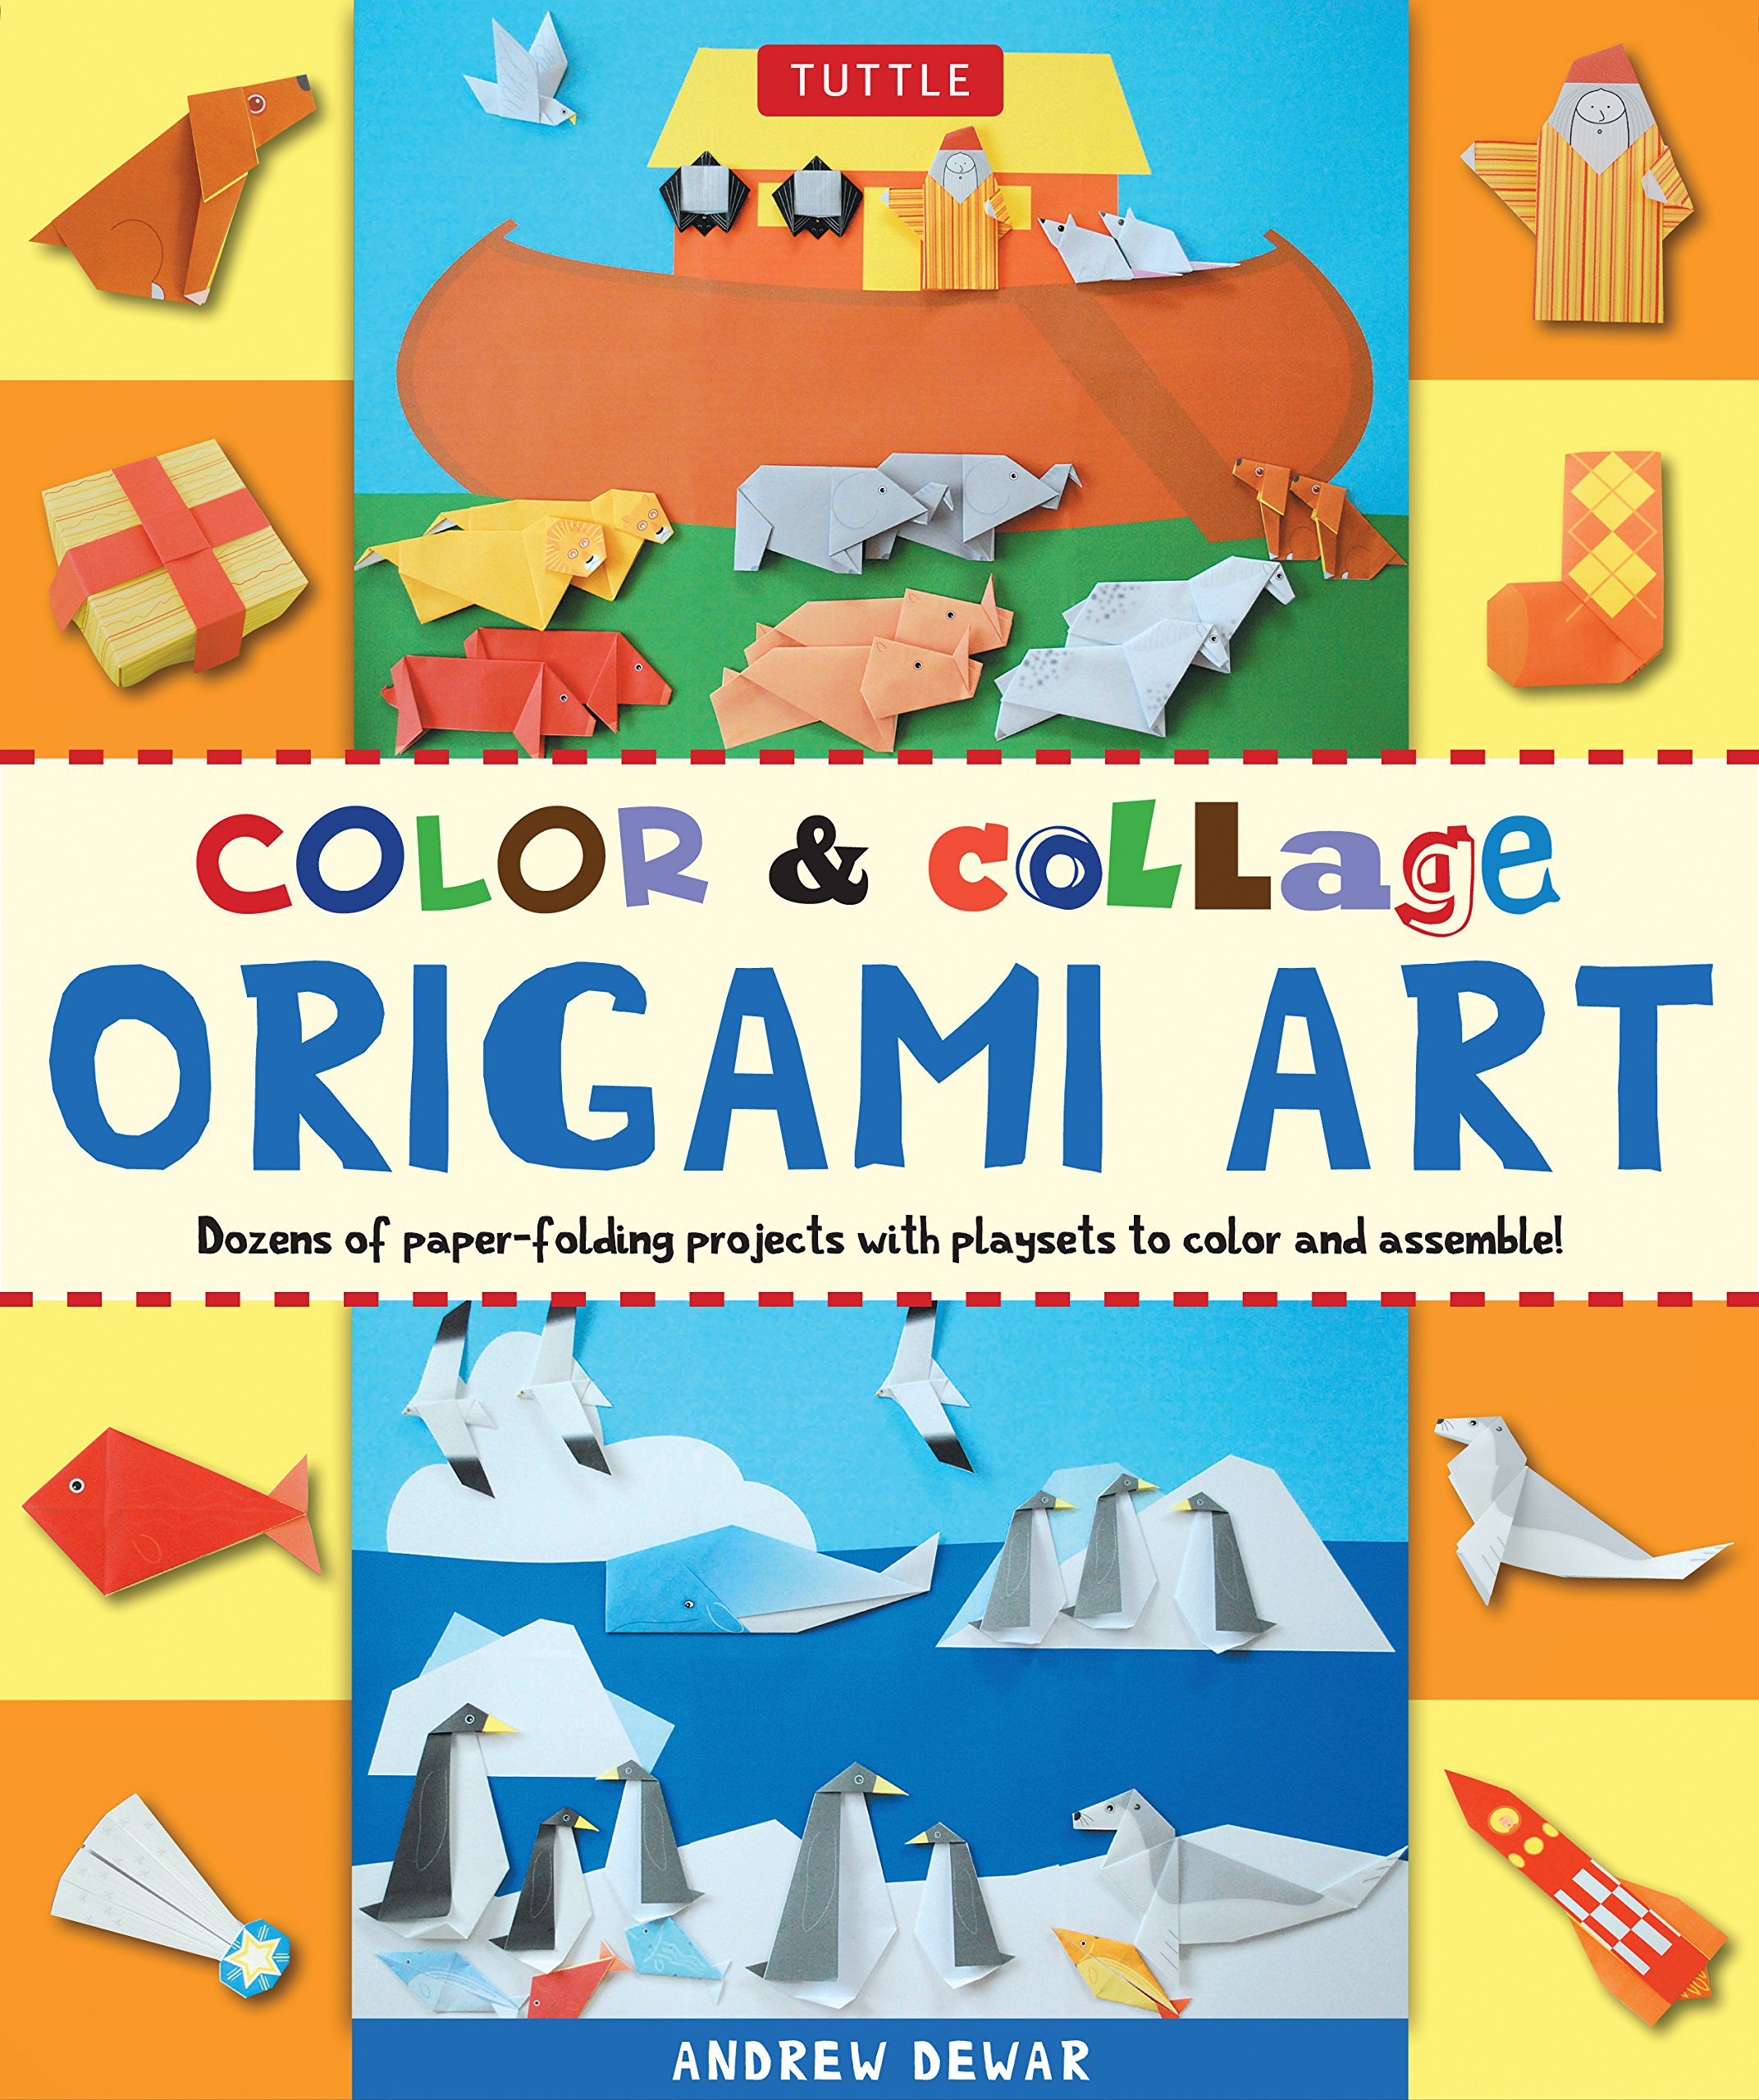 Color & Collage Origami Art Kit: Dozens of Paper-folding Projects With Playsets to Color and Assemble! by Tuttle Publishing